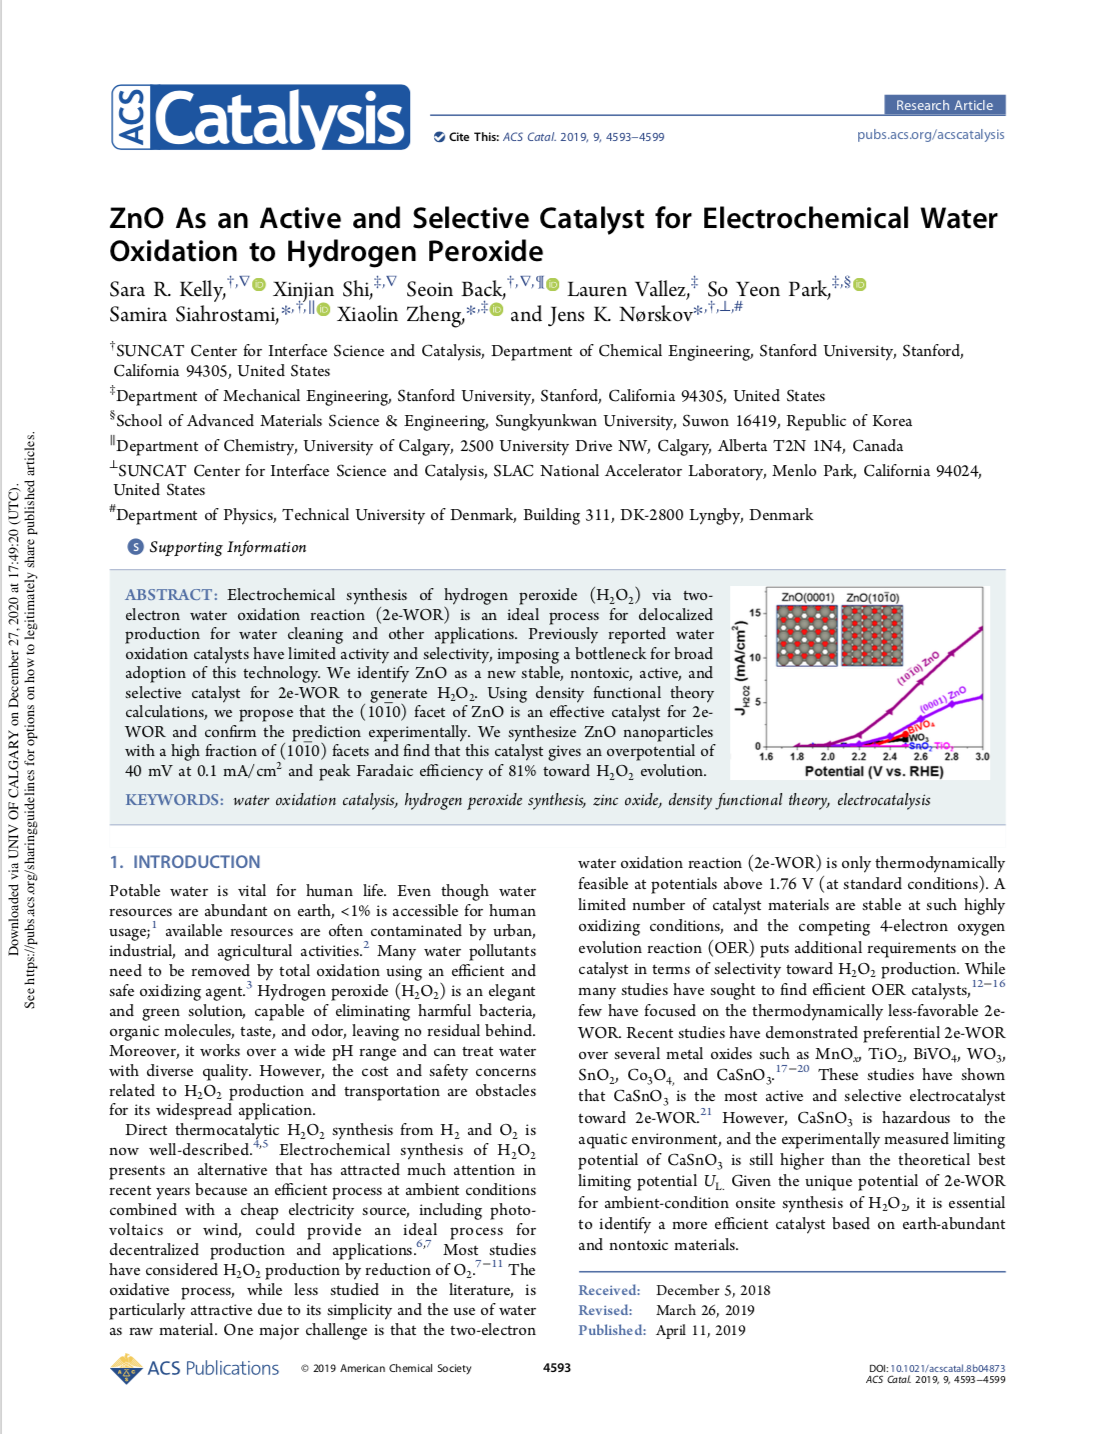 ZnO As an Active and Selective Catalyst for Electrochemical Water Oxidation to Hydrogen Peroxide